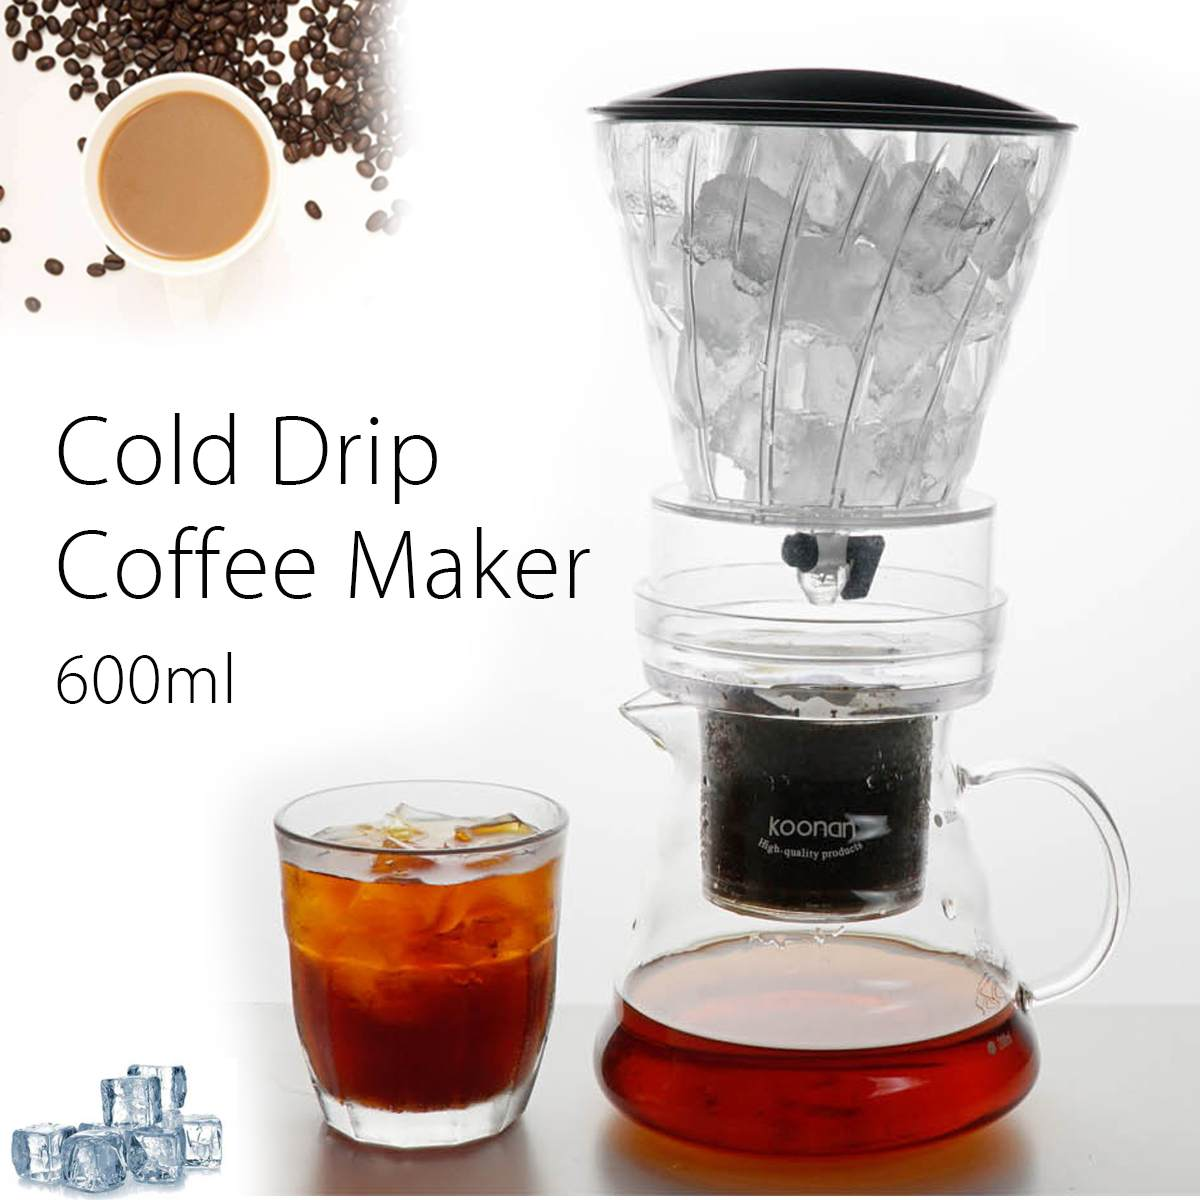 600ml/1000ml Water Drip Coffee Machine Reusable Filter Tools Glass Espresso Coffee Dripper Pot Ice Brew Cold Drip Coffee Maker600ml/1000ml Water Drip Coffee Machine Reusable Filter Tools Glass Espresso Coffee Dripper Pot Ice Brew Cold Drip Coffee Maker